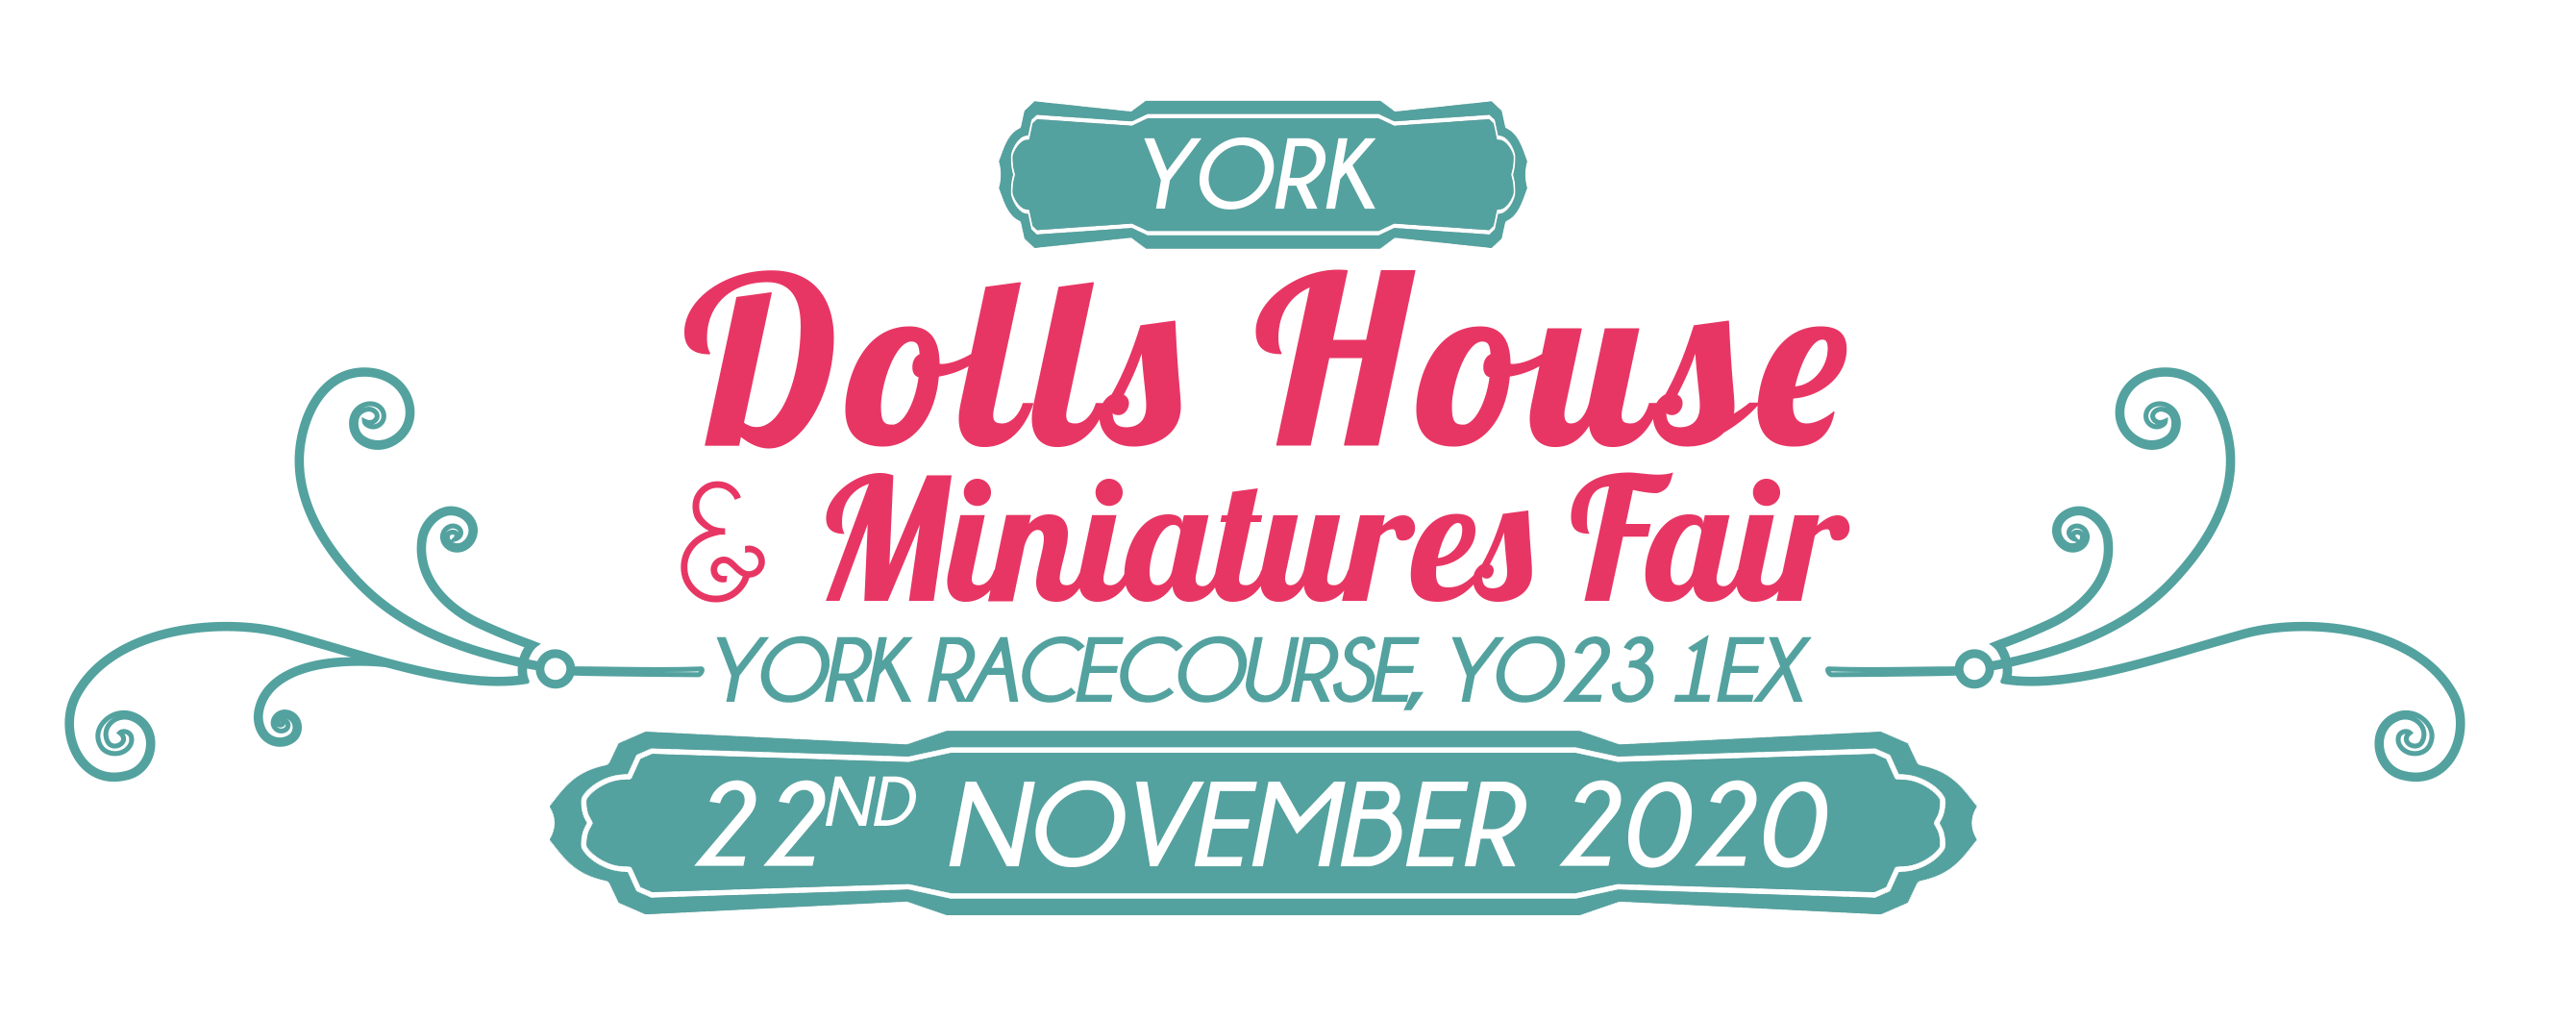 York Dolls House & Miniatures Fair (Winter)